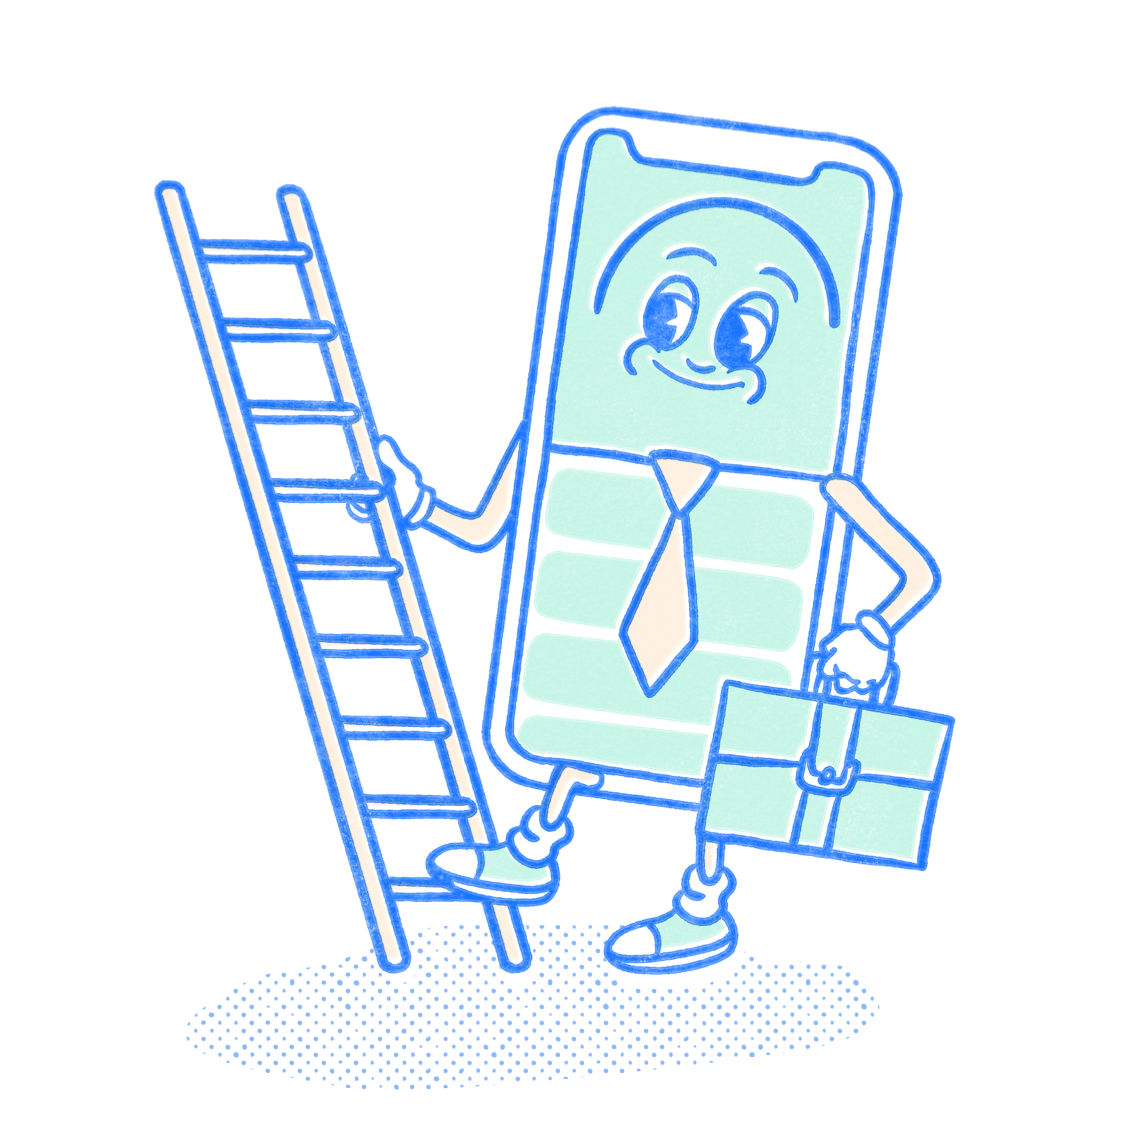 Professional Pocket Prep mascot holding a briefcase as they climb a ladder. Illustration.